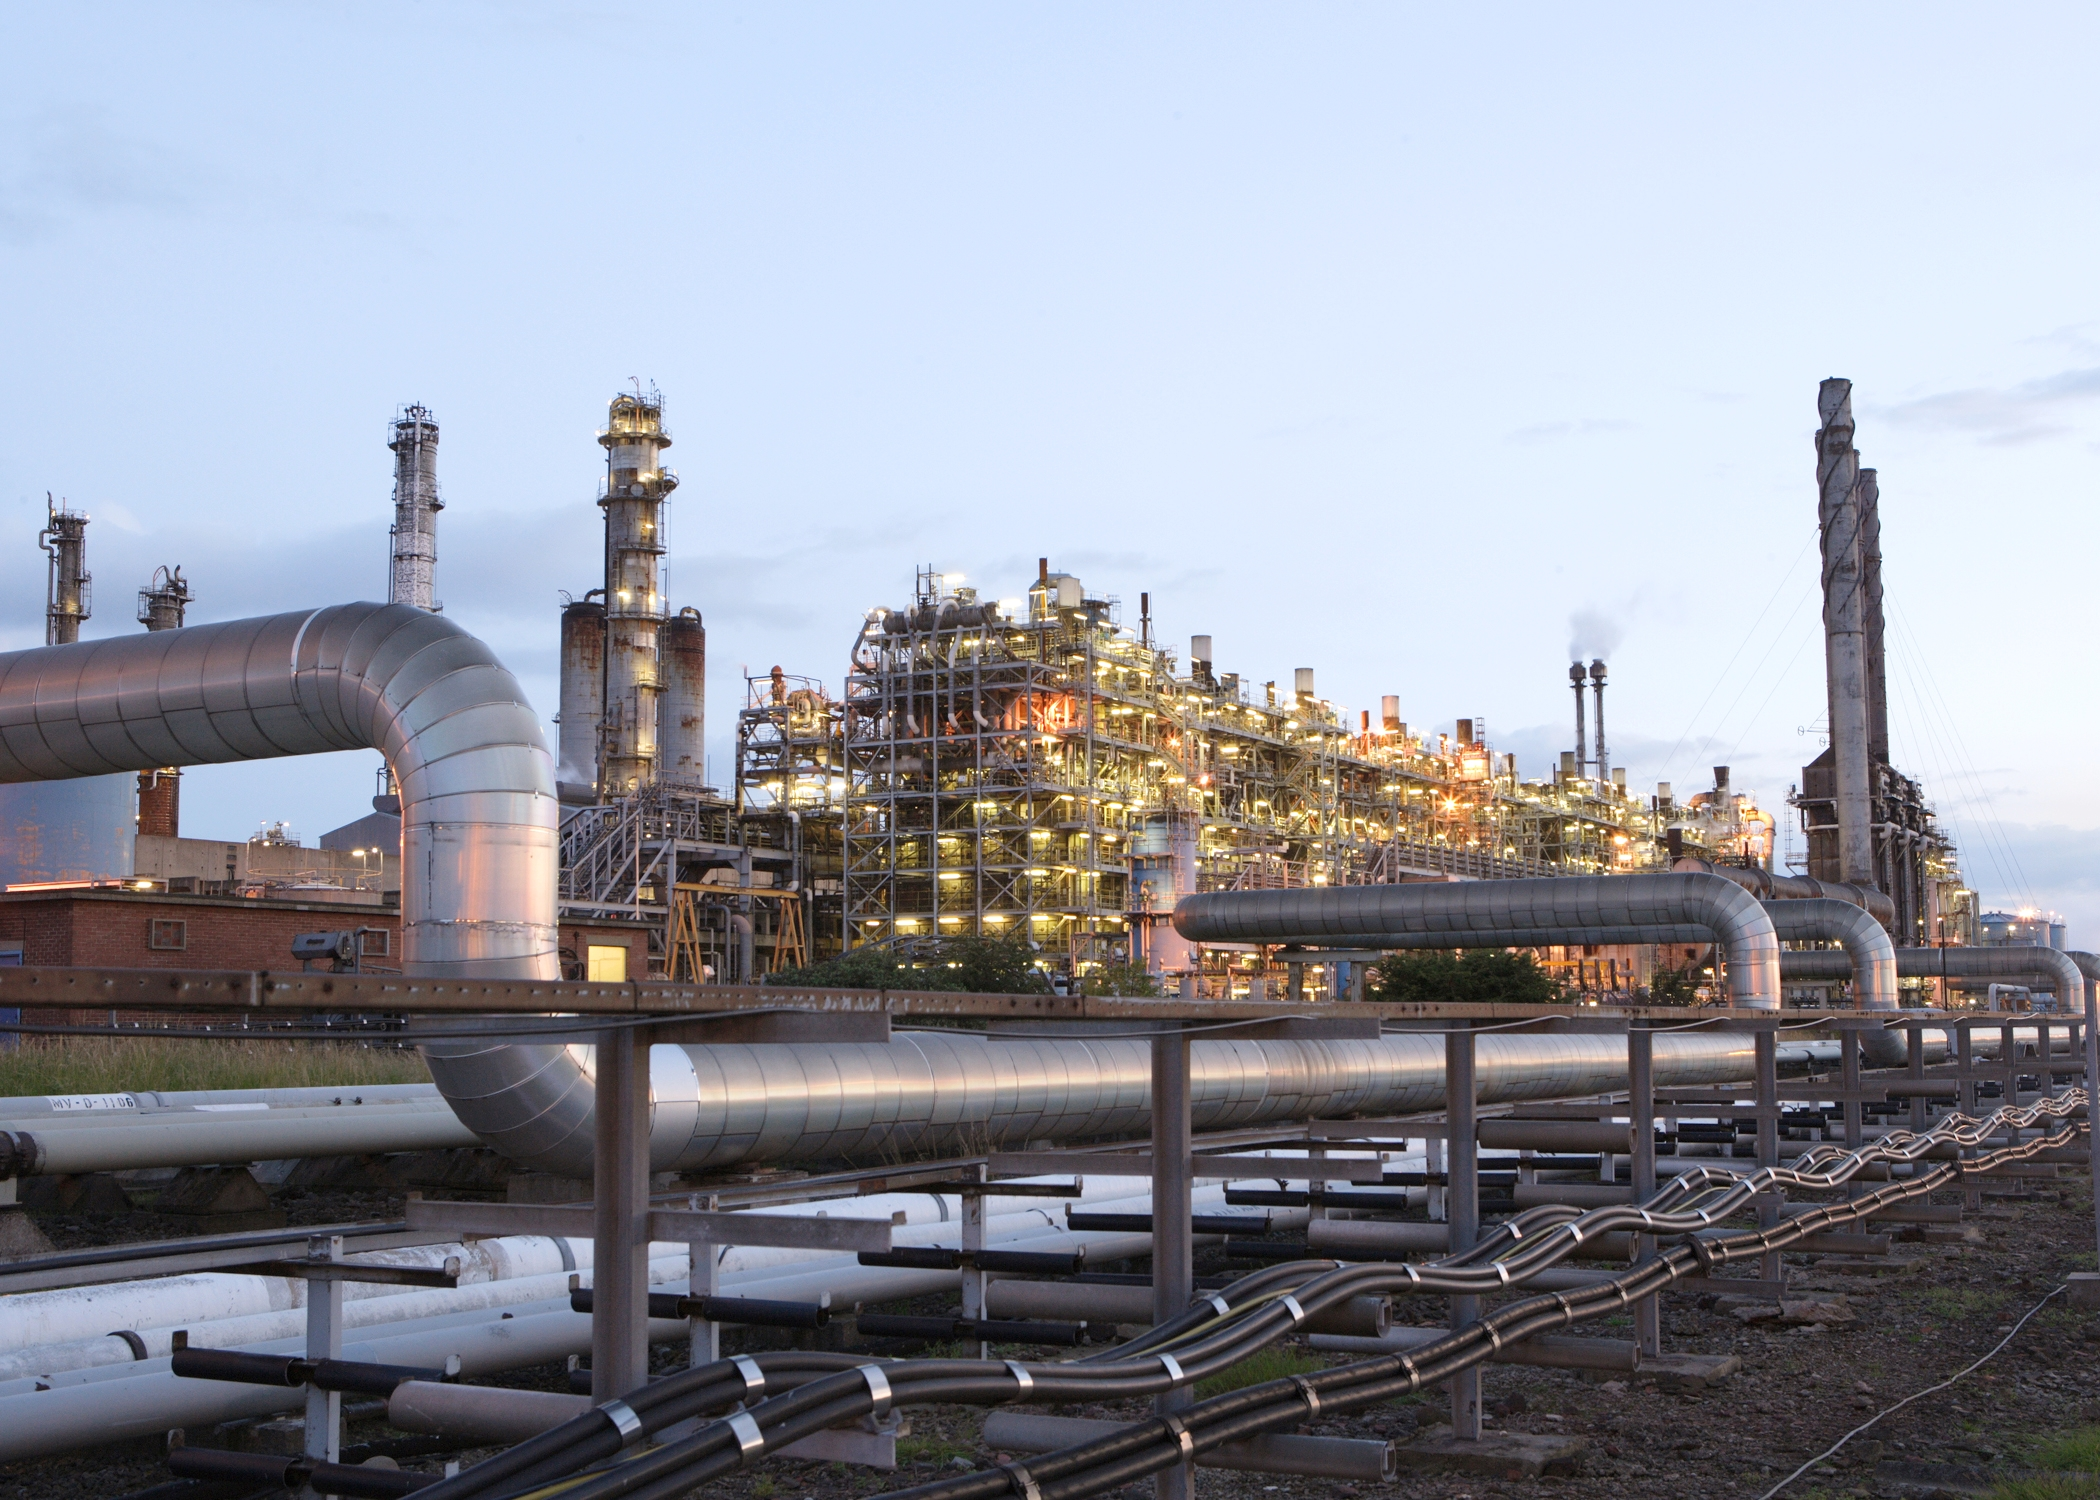 Bilfinger wins €60 million contract from SABIC